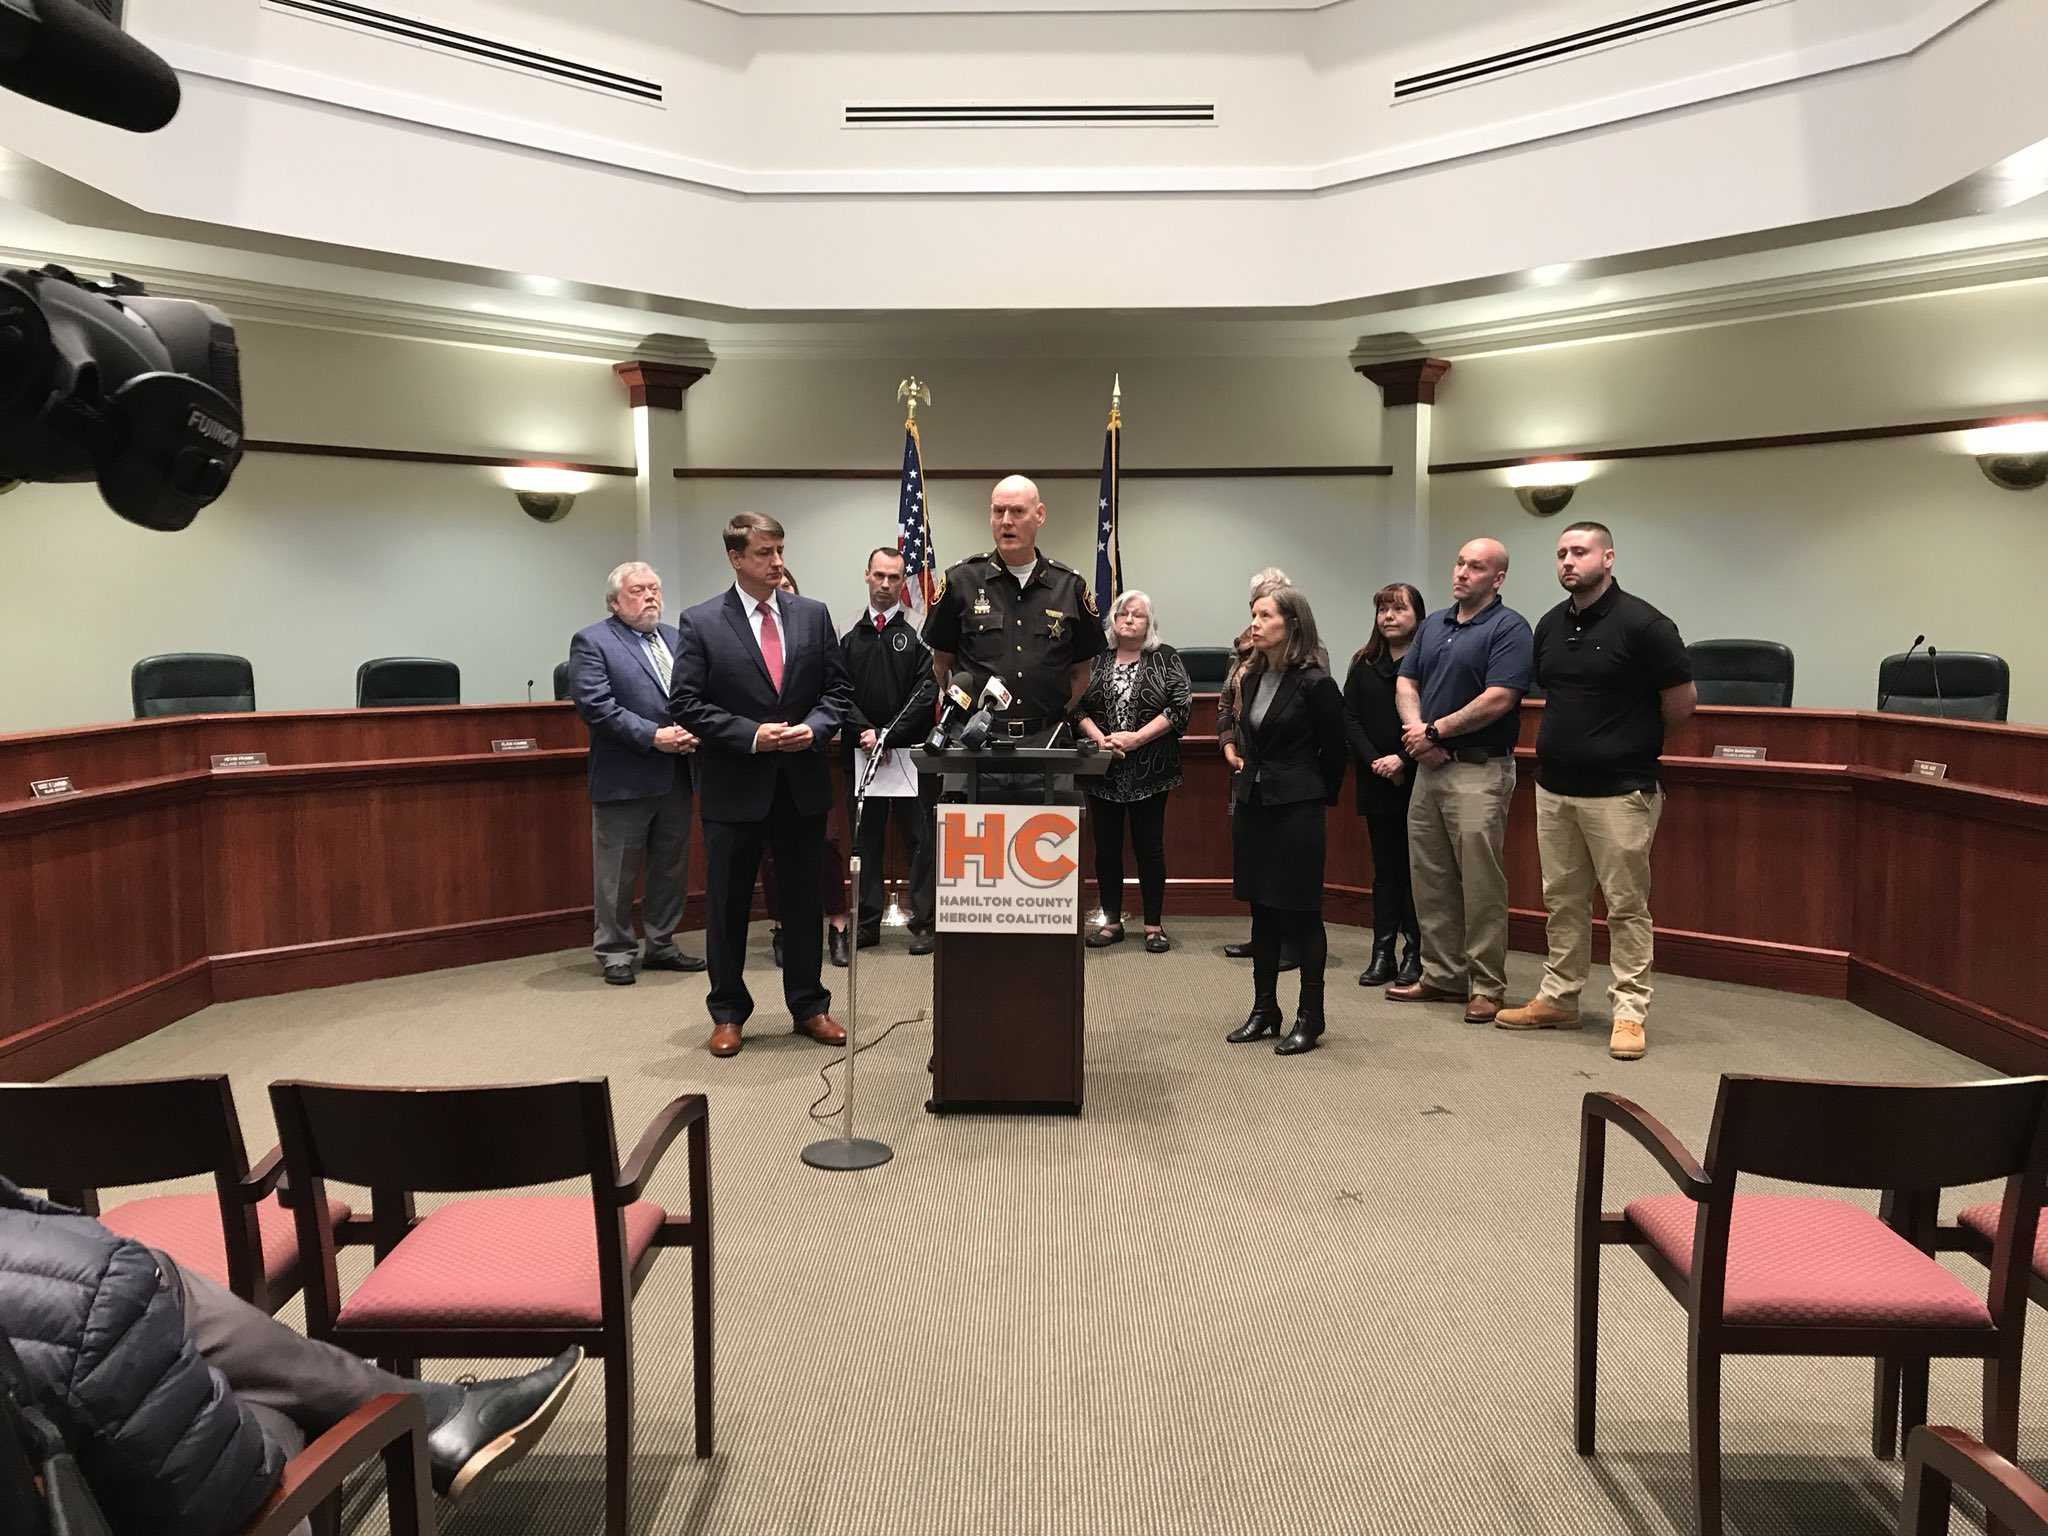 County-wide quick response team aims to get addicts into recovery